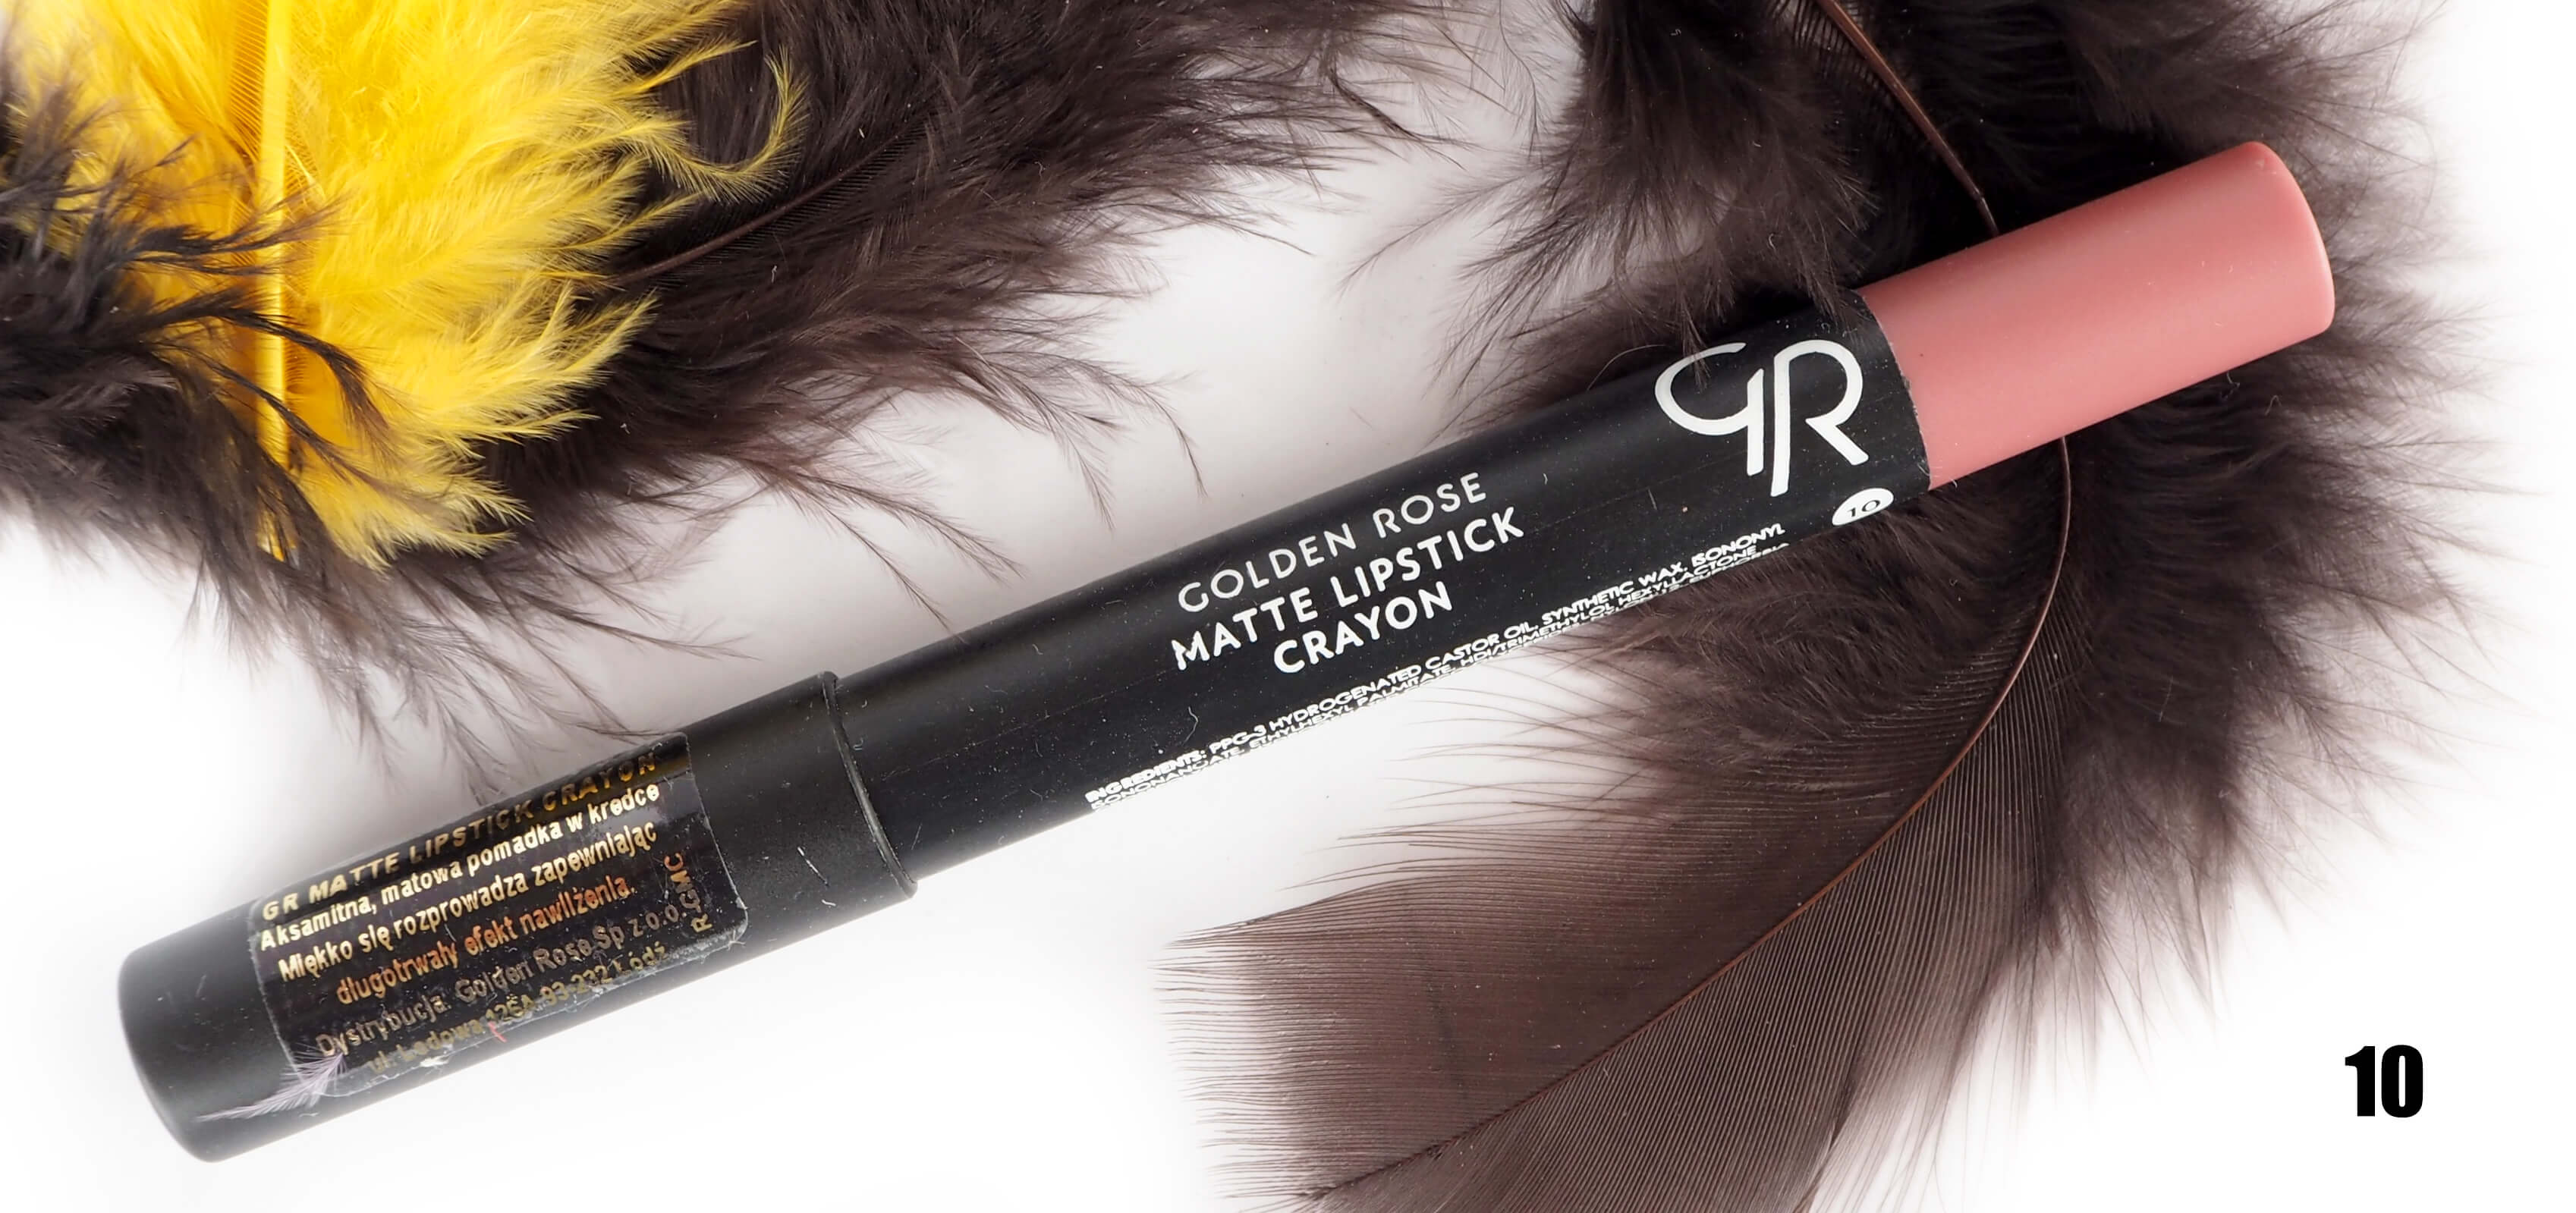 GOLDEN ROSE 10 MATTE LIPSTICK CRAYON